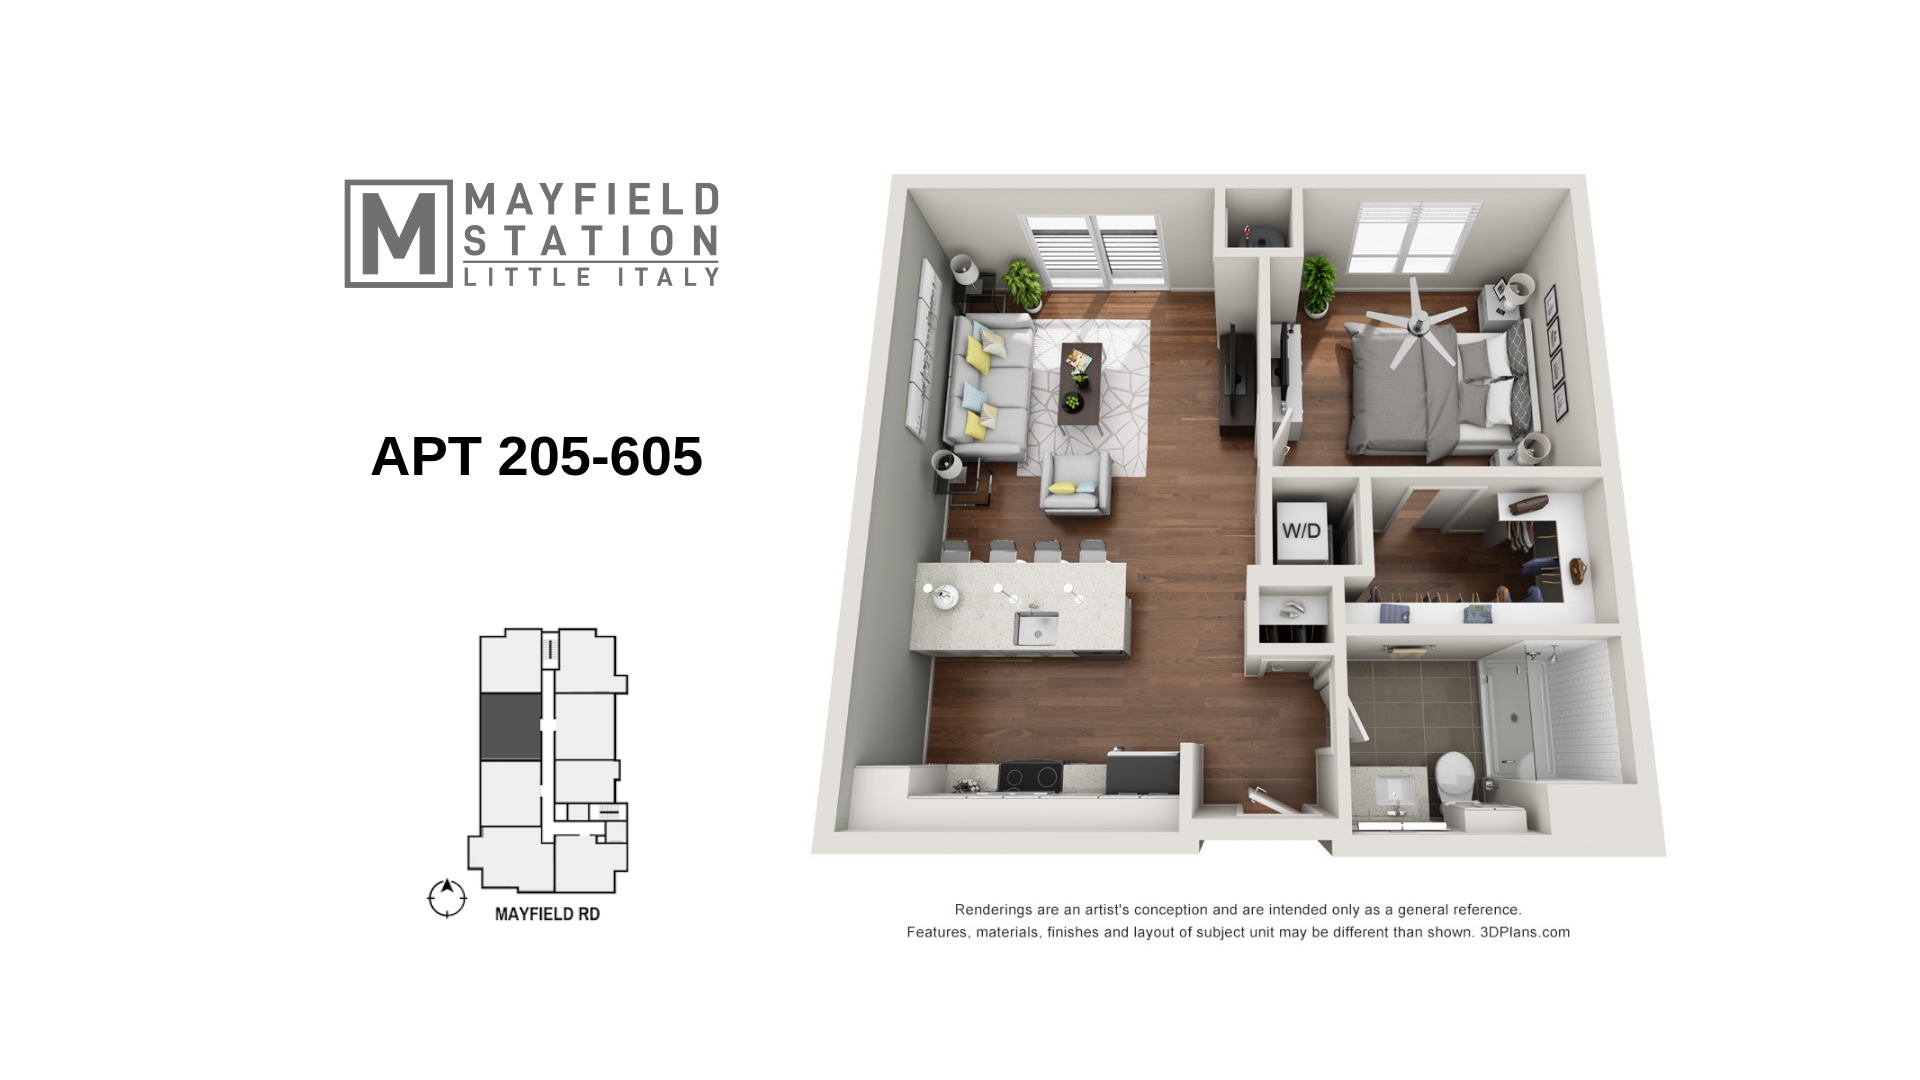 Mayfield Station Apartments - Floorplan - APT 205-605